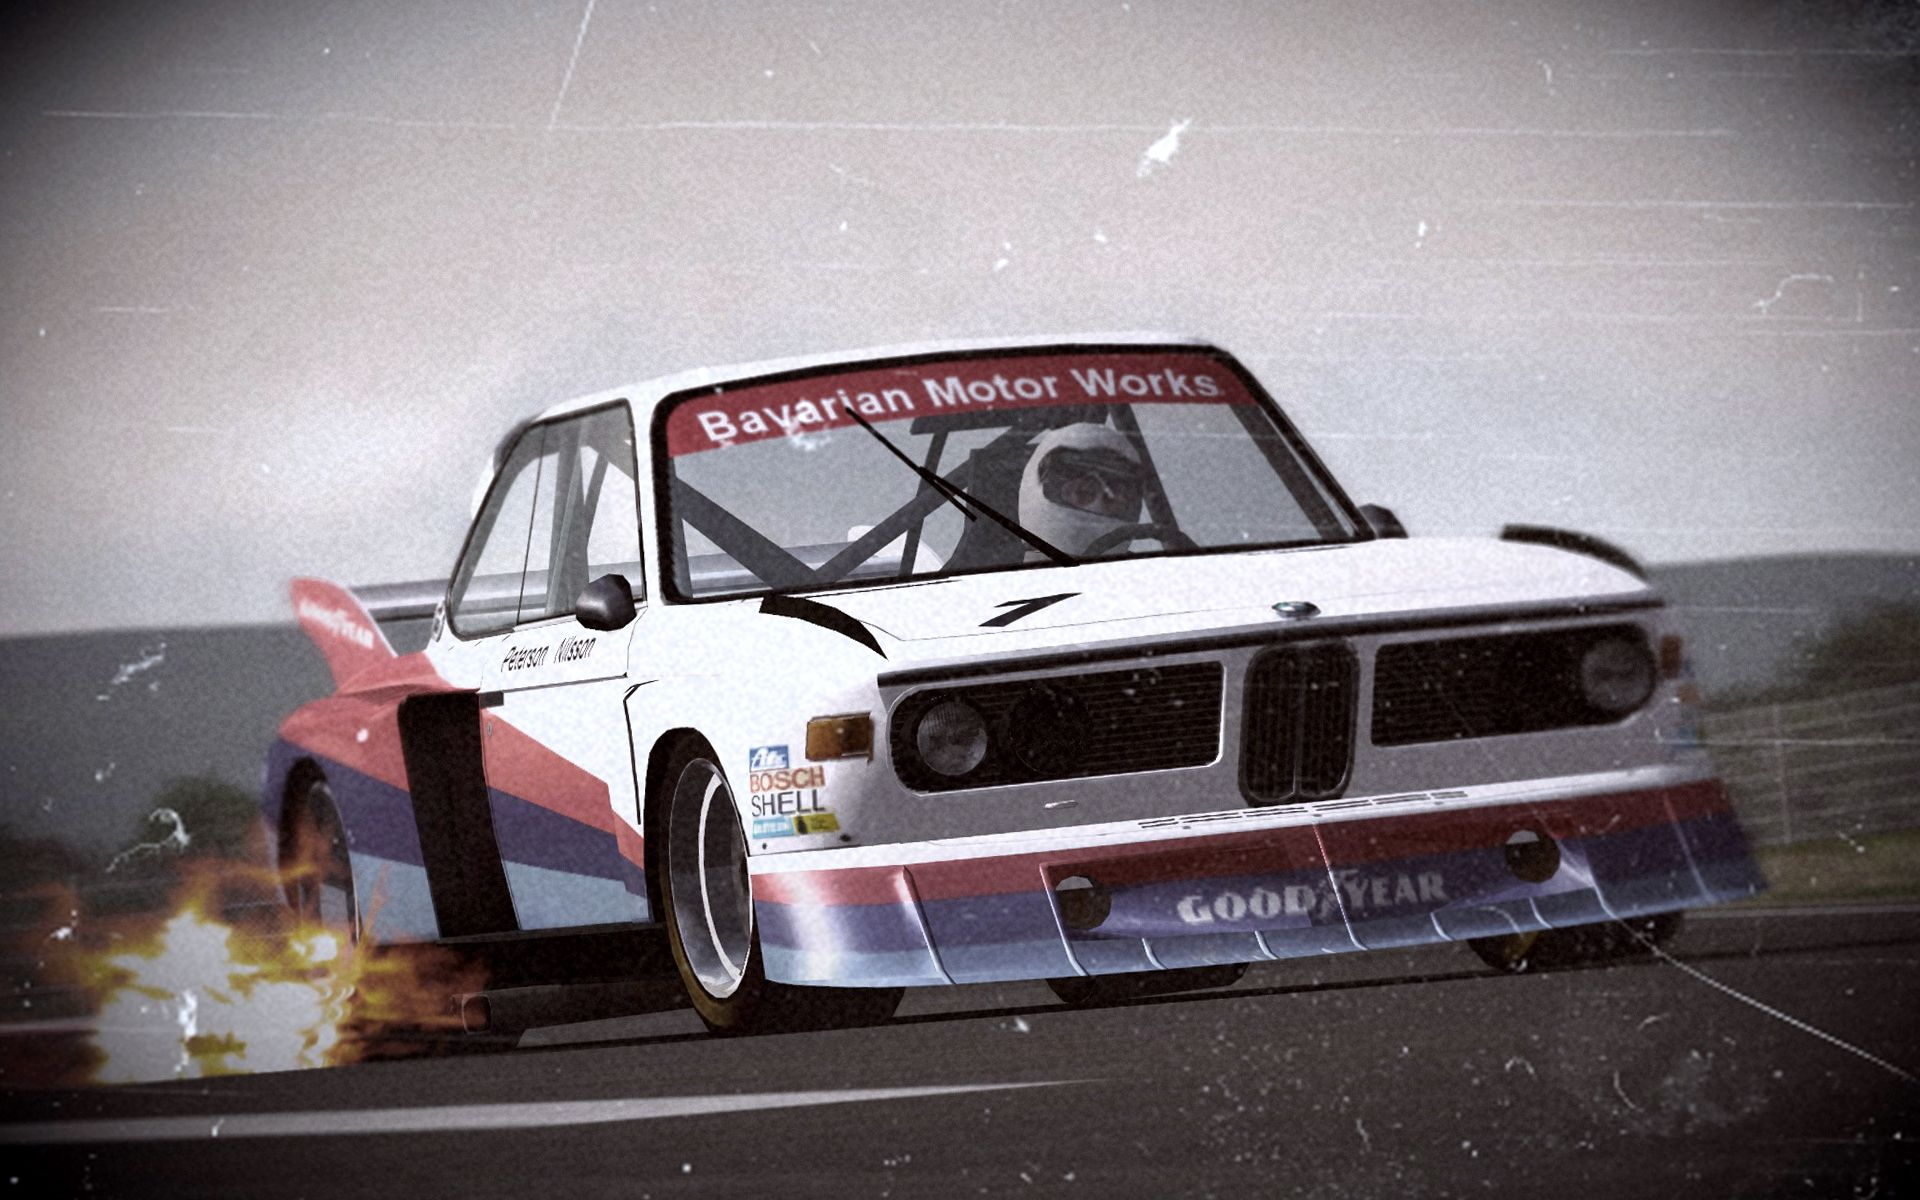 Classic Bmw Wallpapers On Wallpaperdog